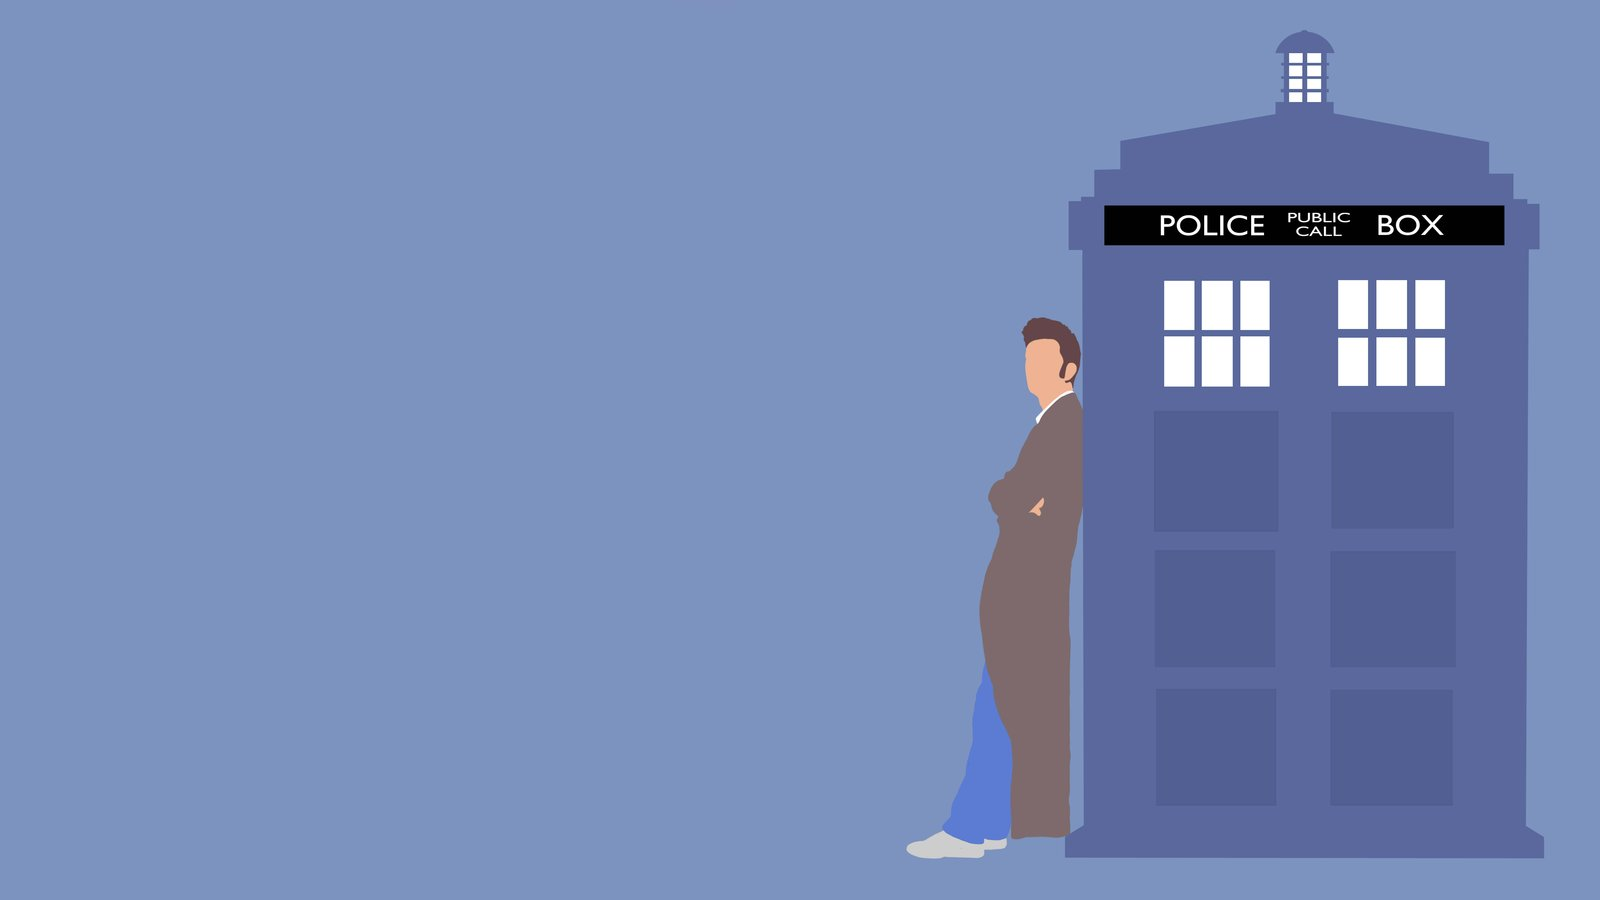 Tardis Wallpaper Iphone The 10th doctor and his tardis 1600x900